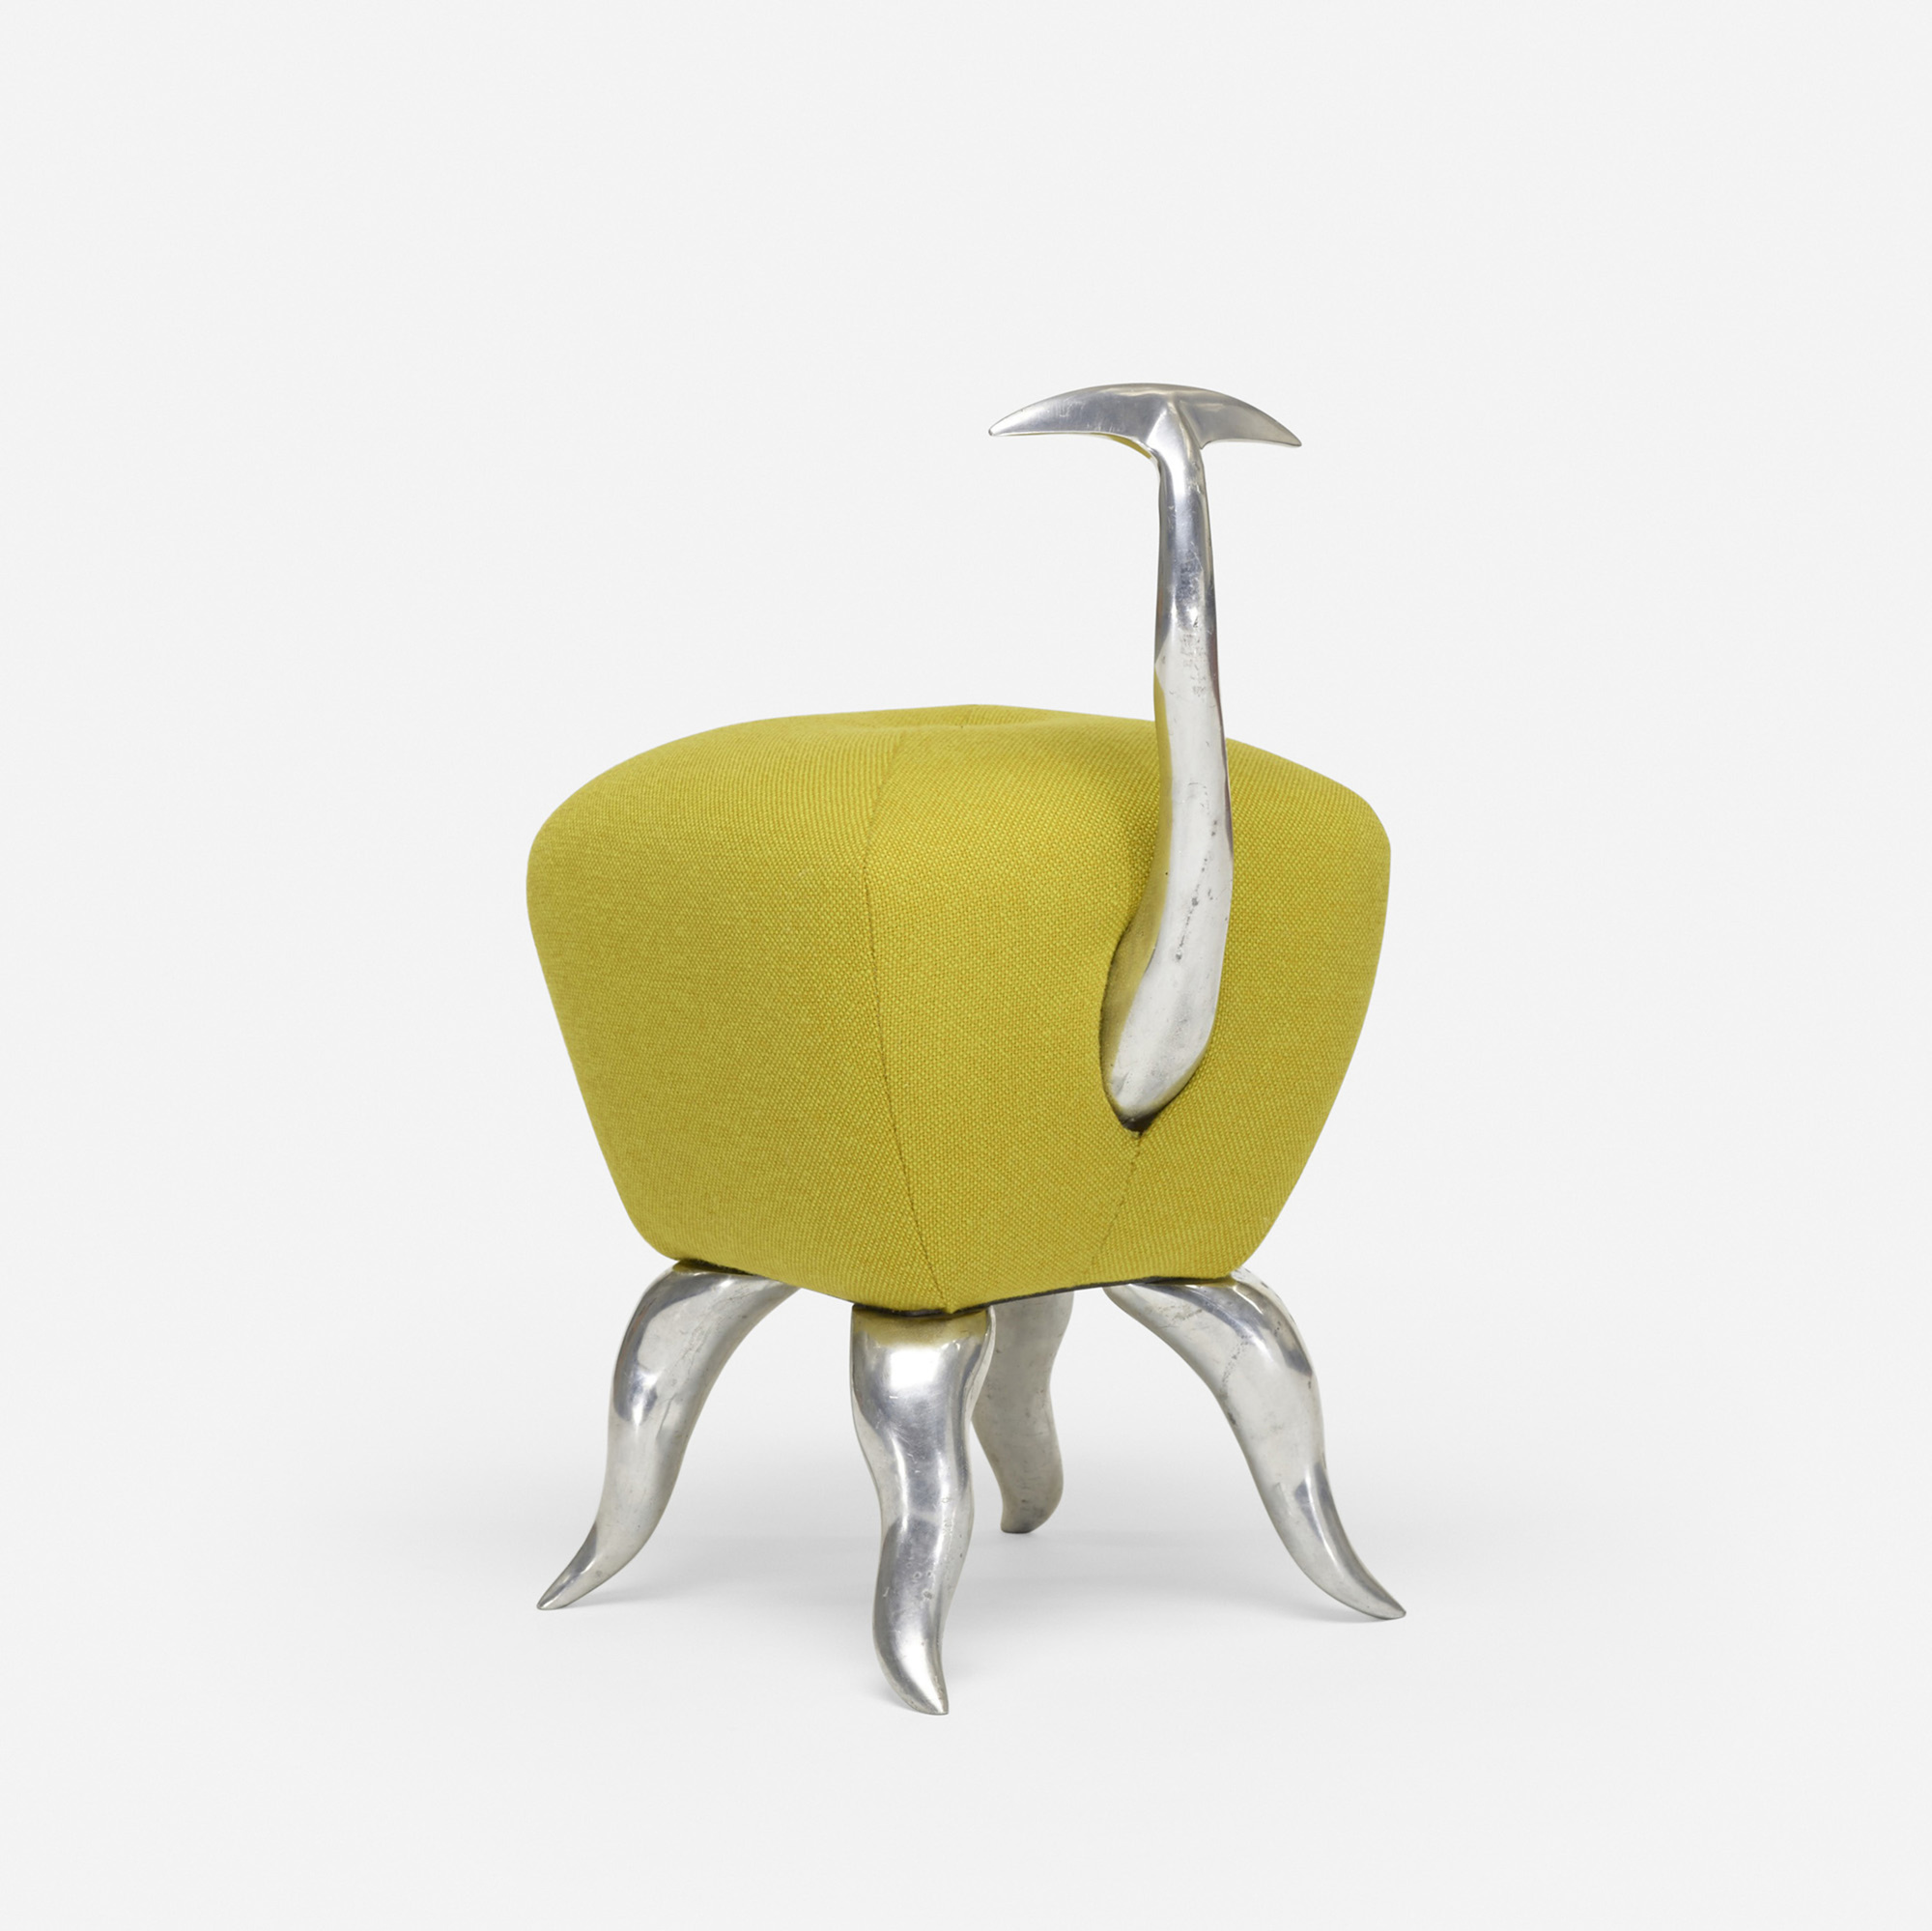 740: In the manner of Philippe Starck / stool (2 of 3)